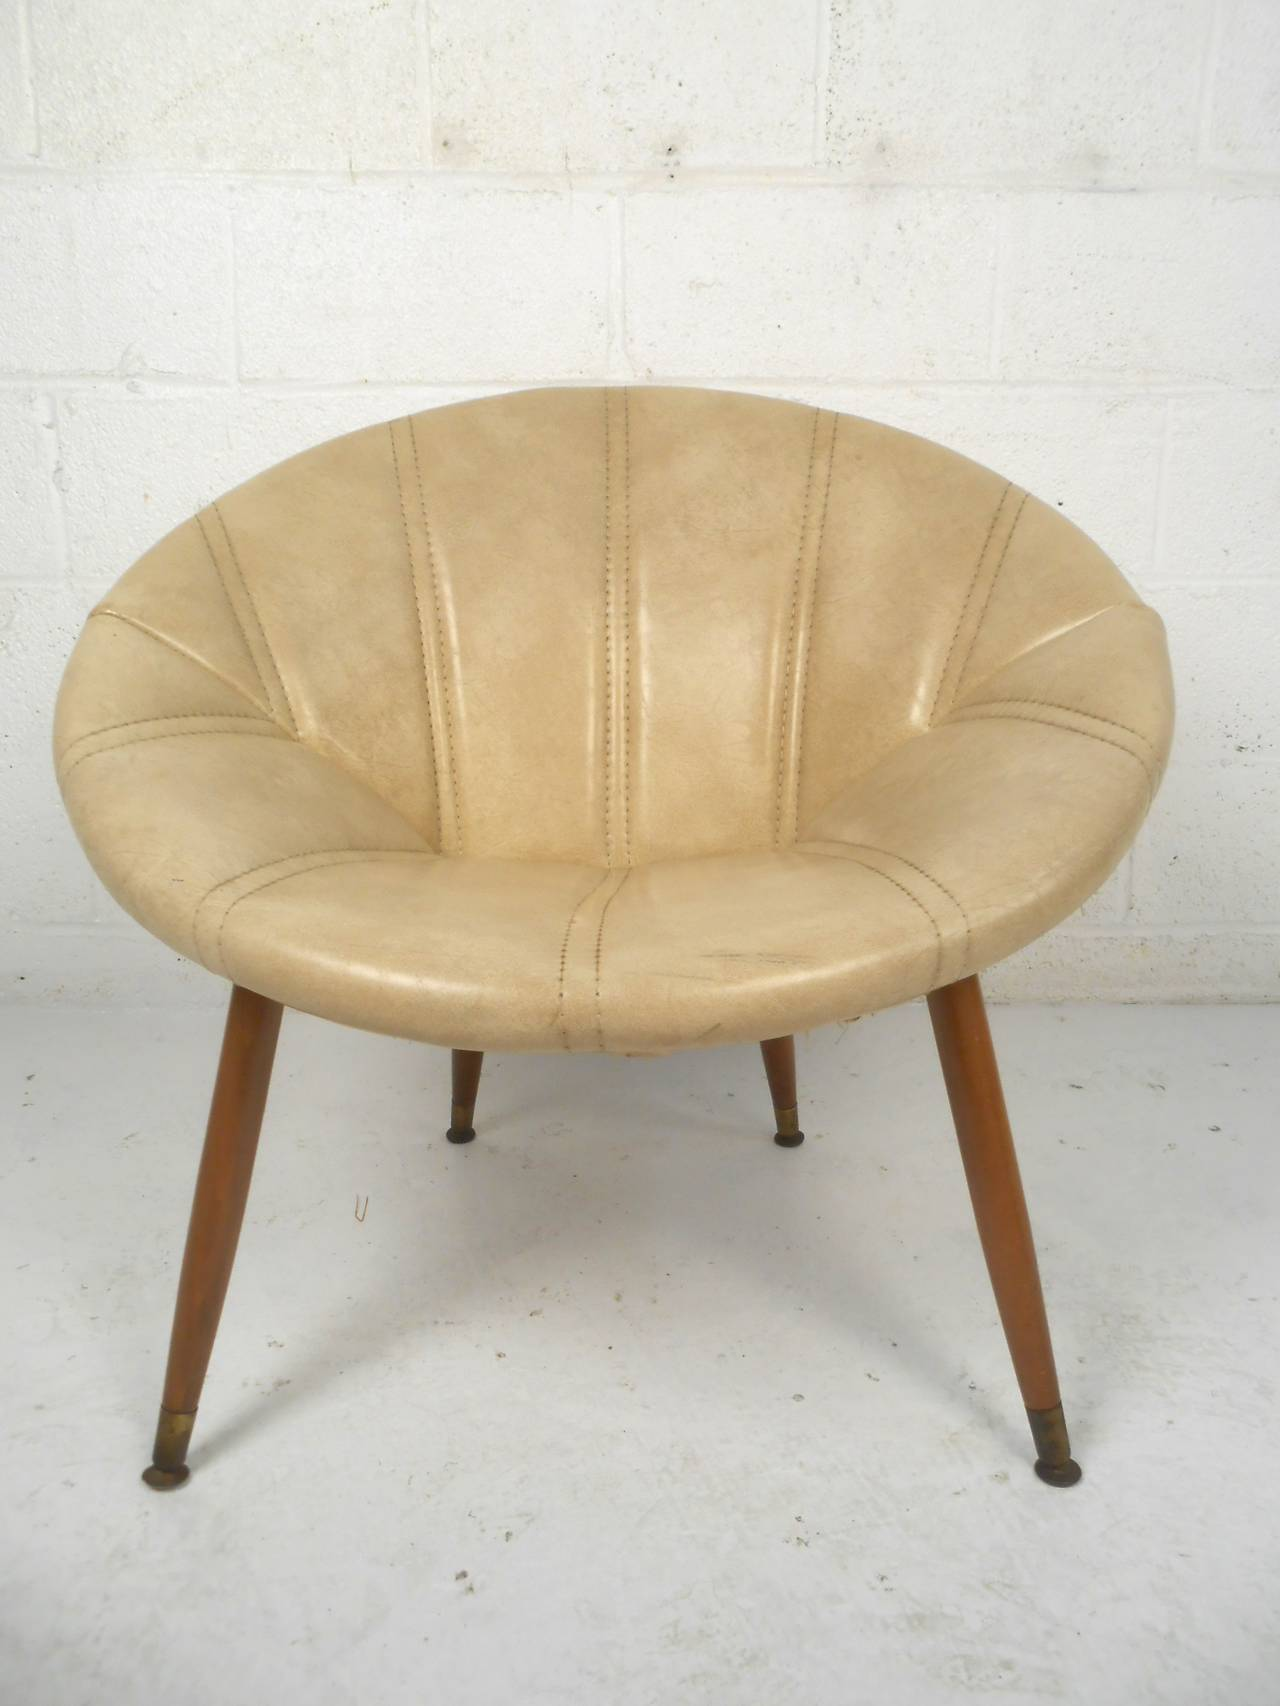 saucer chair for kids covers a party round midcentury sale at 1stdibs